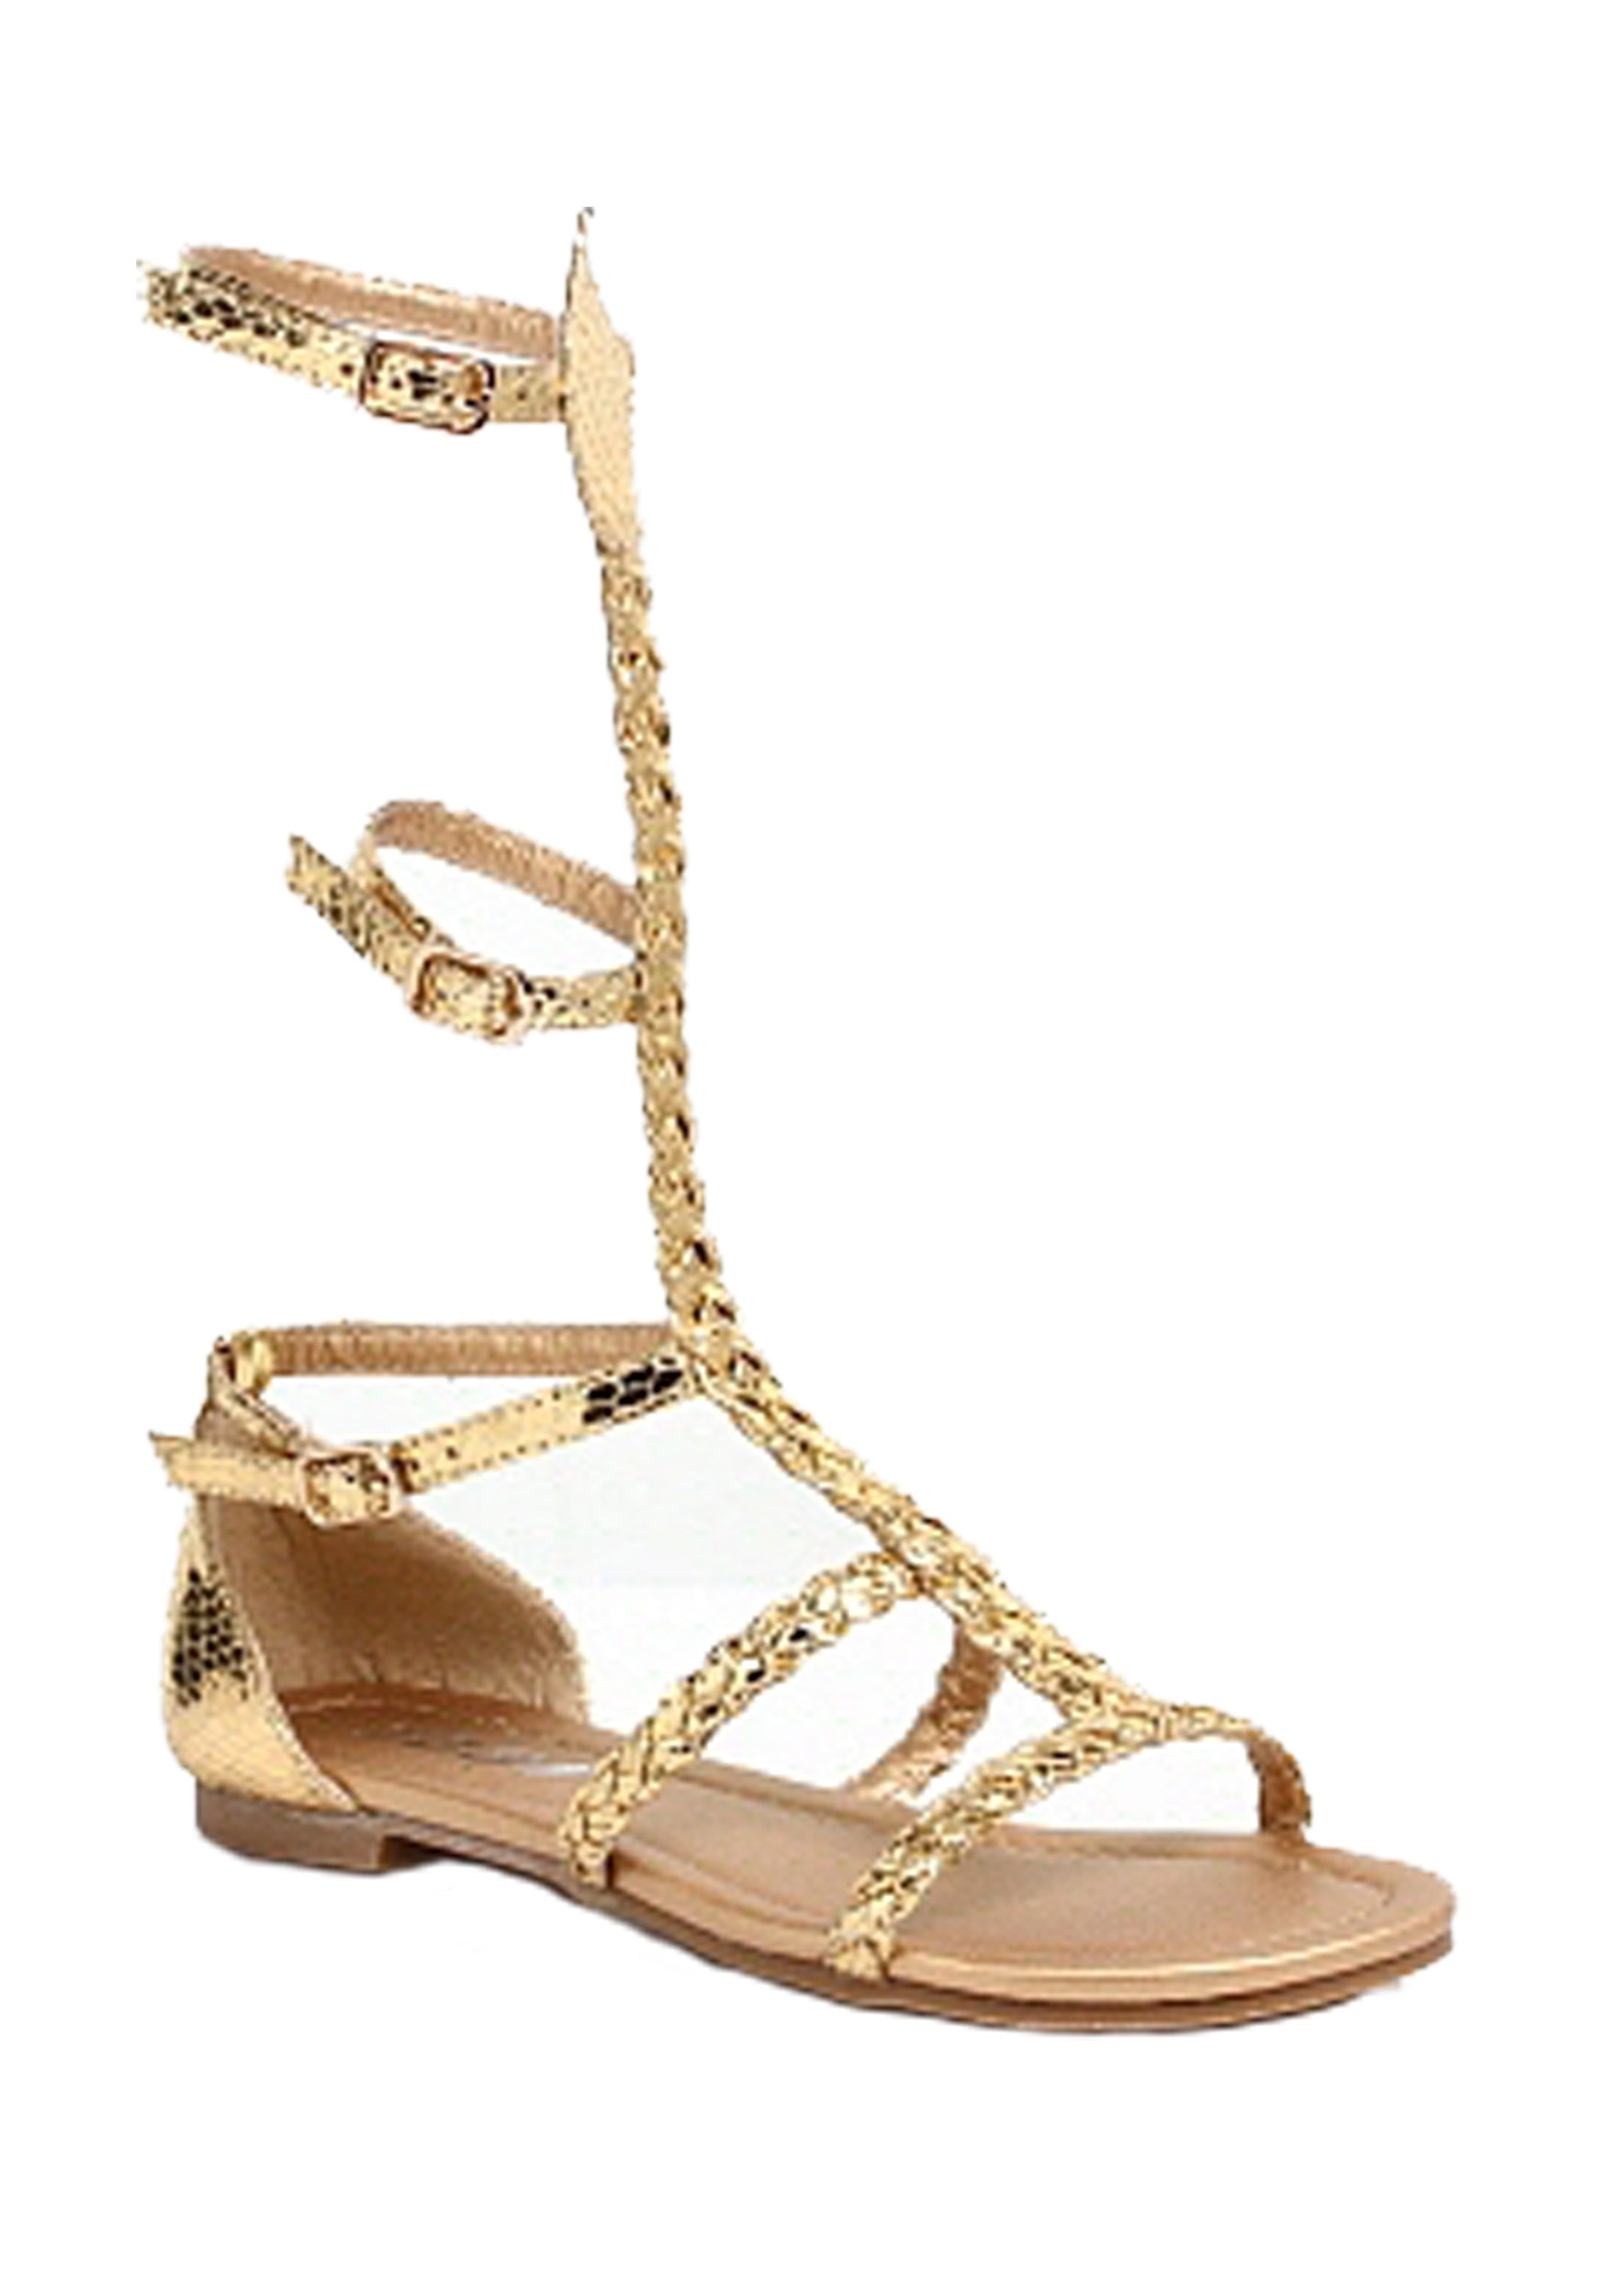 Egyptian Gold Child Costume Sandals